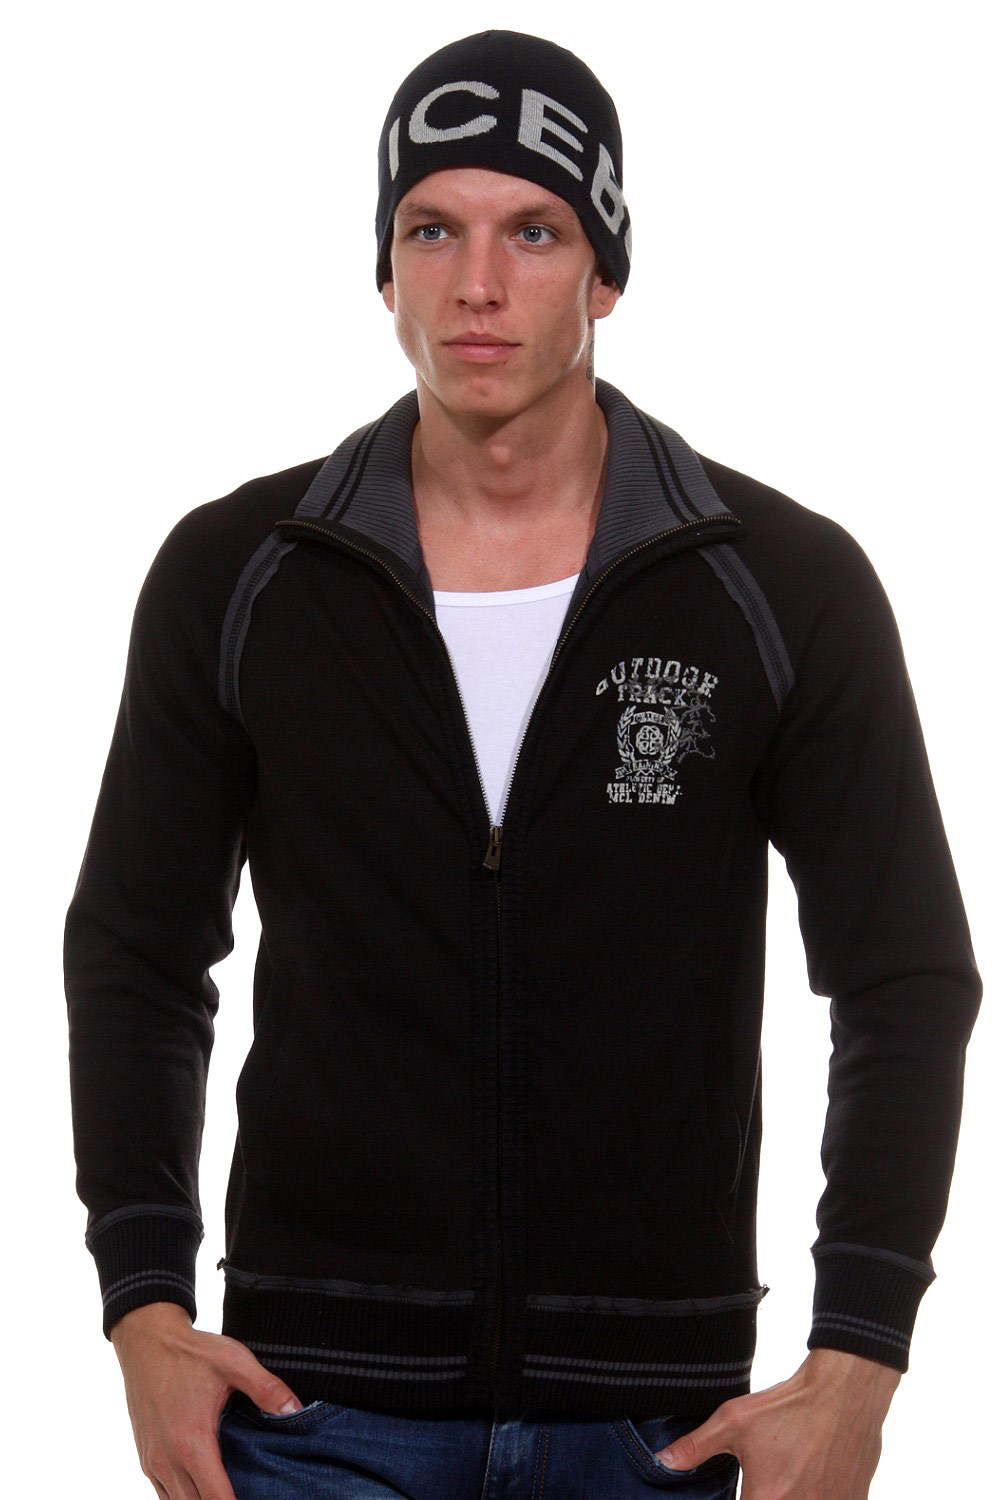 MCL sweat jacket at oboy.com